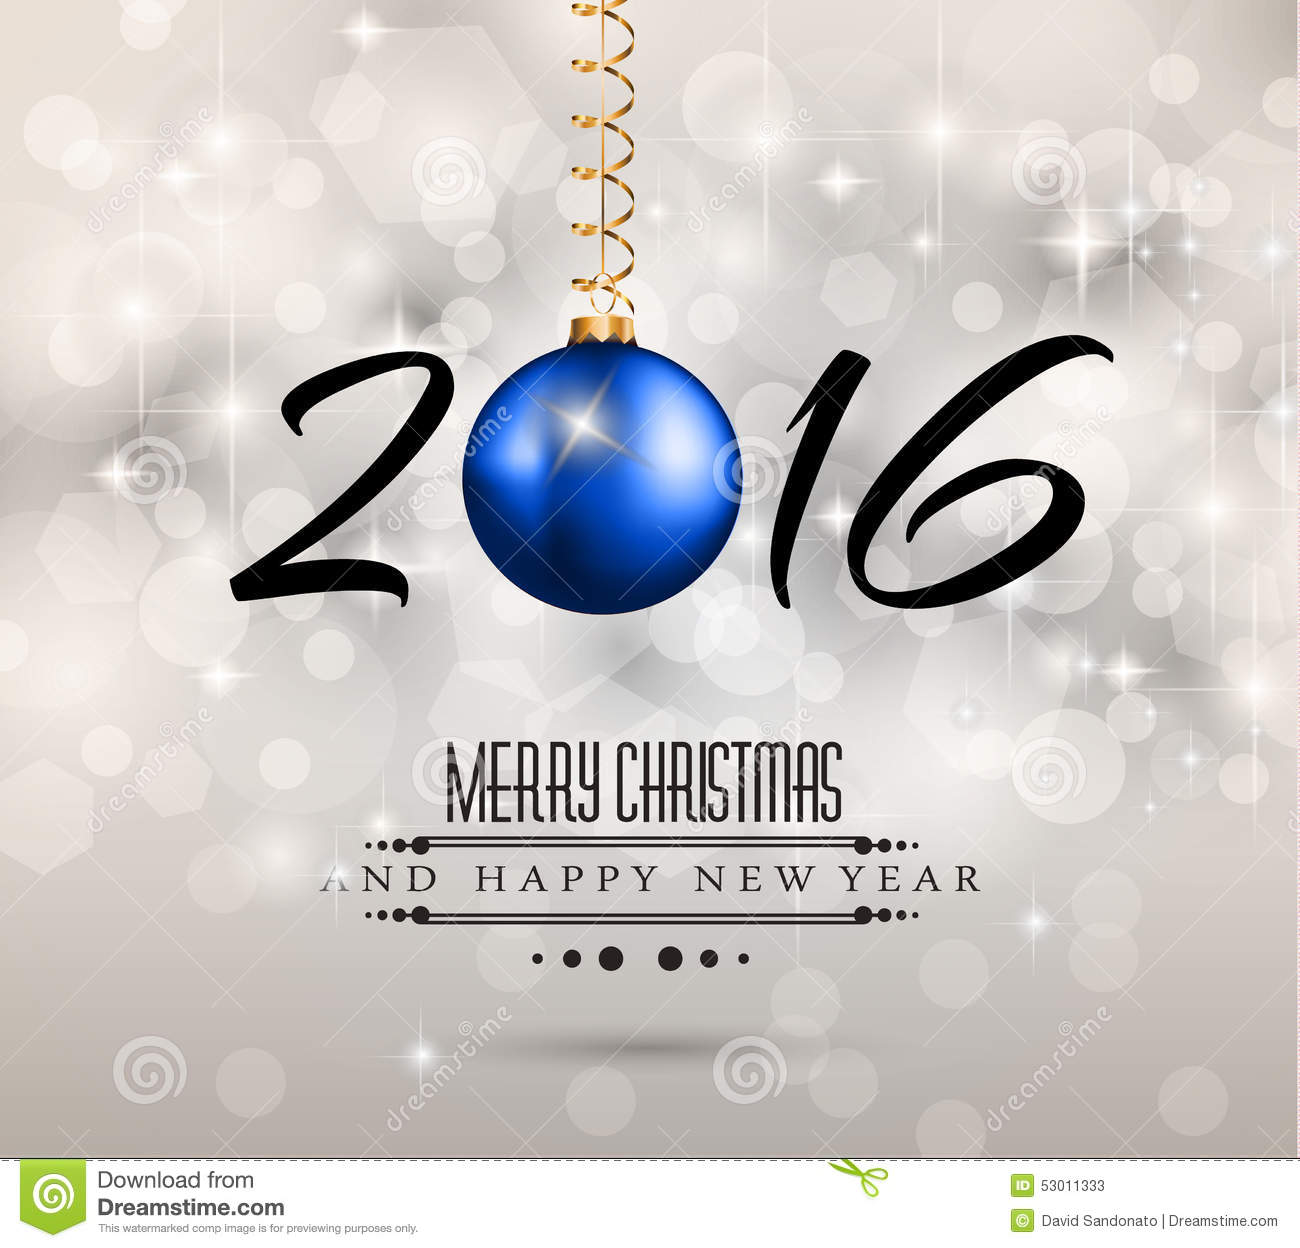 2016 New Year And Happy Christmas Background For Your Flyers, Stock ...